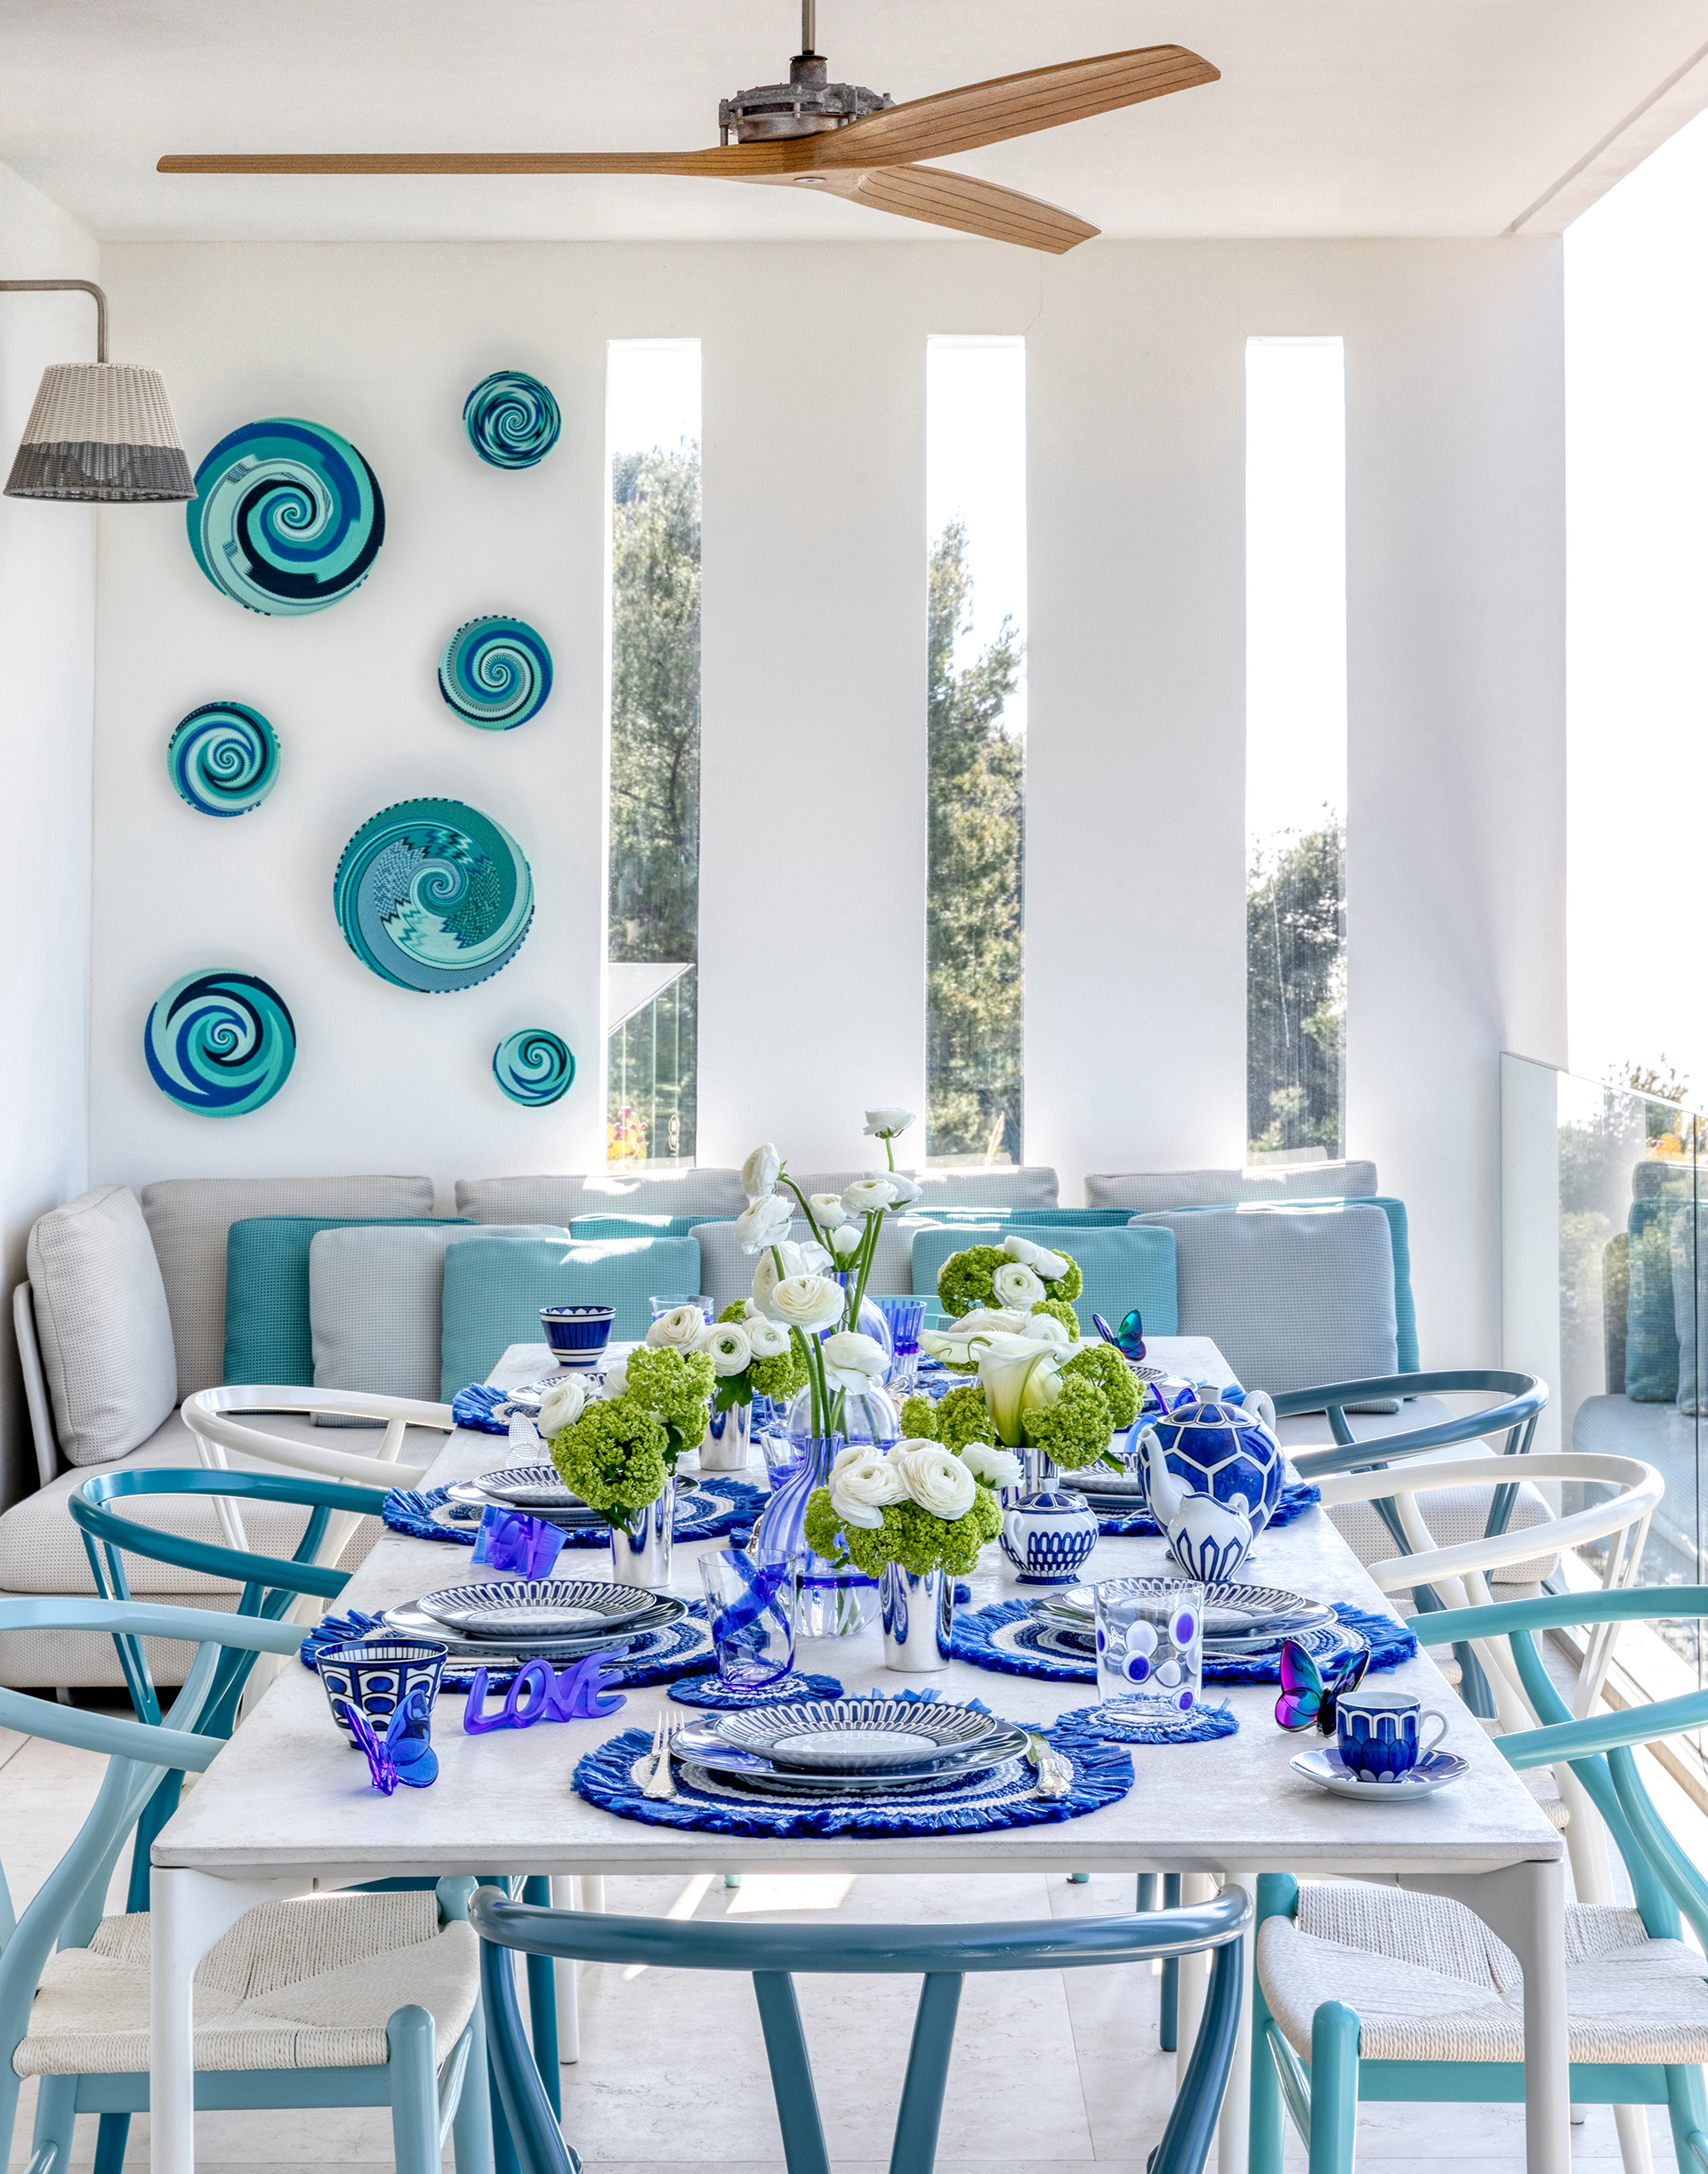 The dining room is all dressed up with its Paola Lenti table and Carl Hensen chairs - the Boffi fan adds an element of earthy quirk | Villa Riviera | Sabrina Monteleone-Oeino | STIR